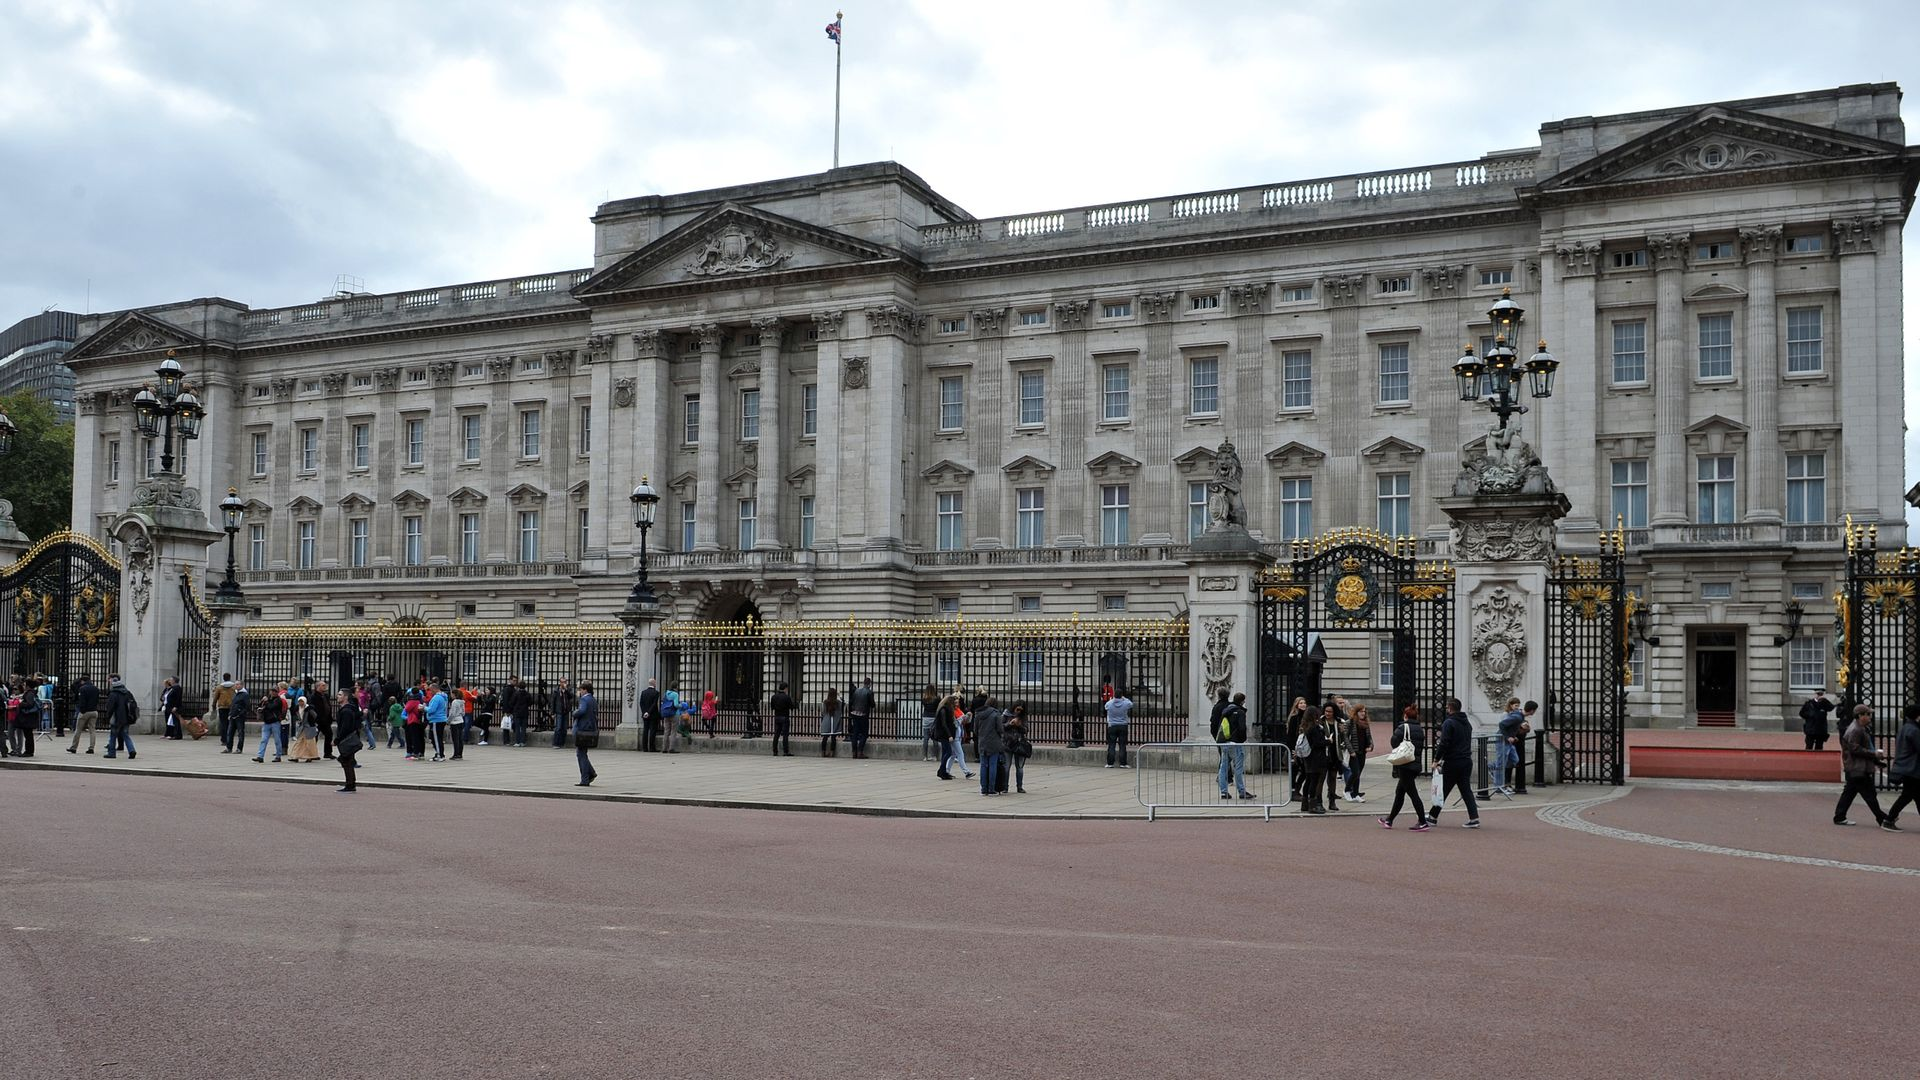 Commonwealth Games 2022: Relay to start at Buckingham Palace - sky sports